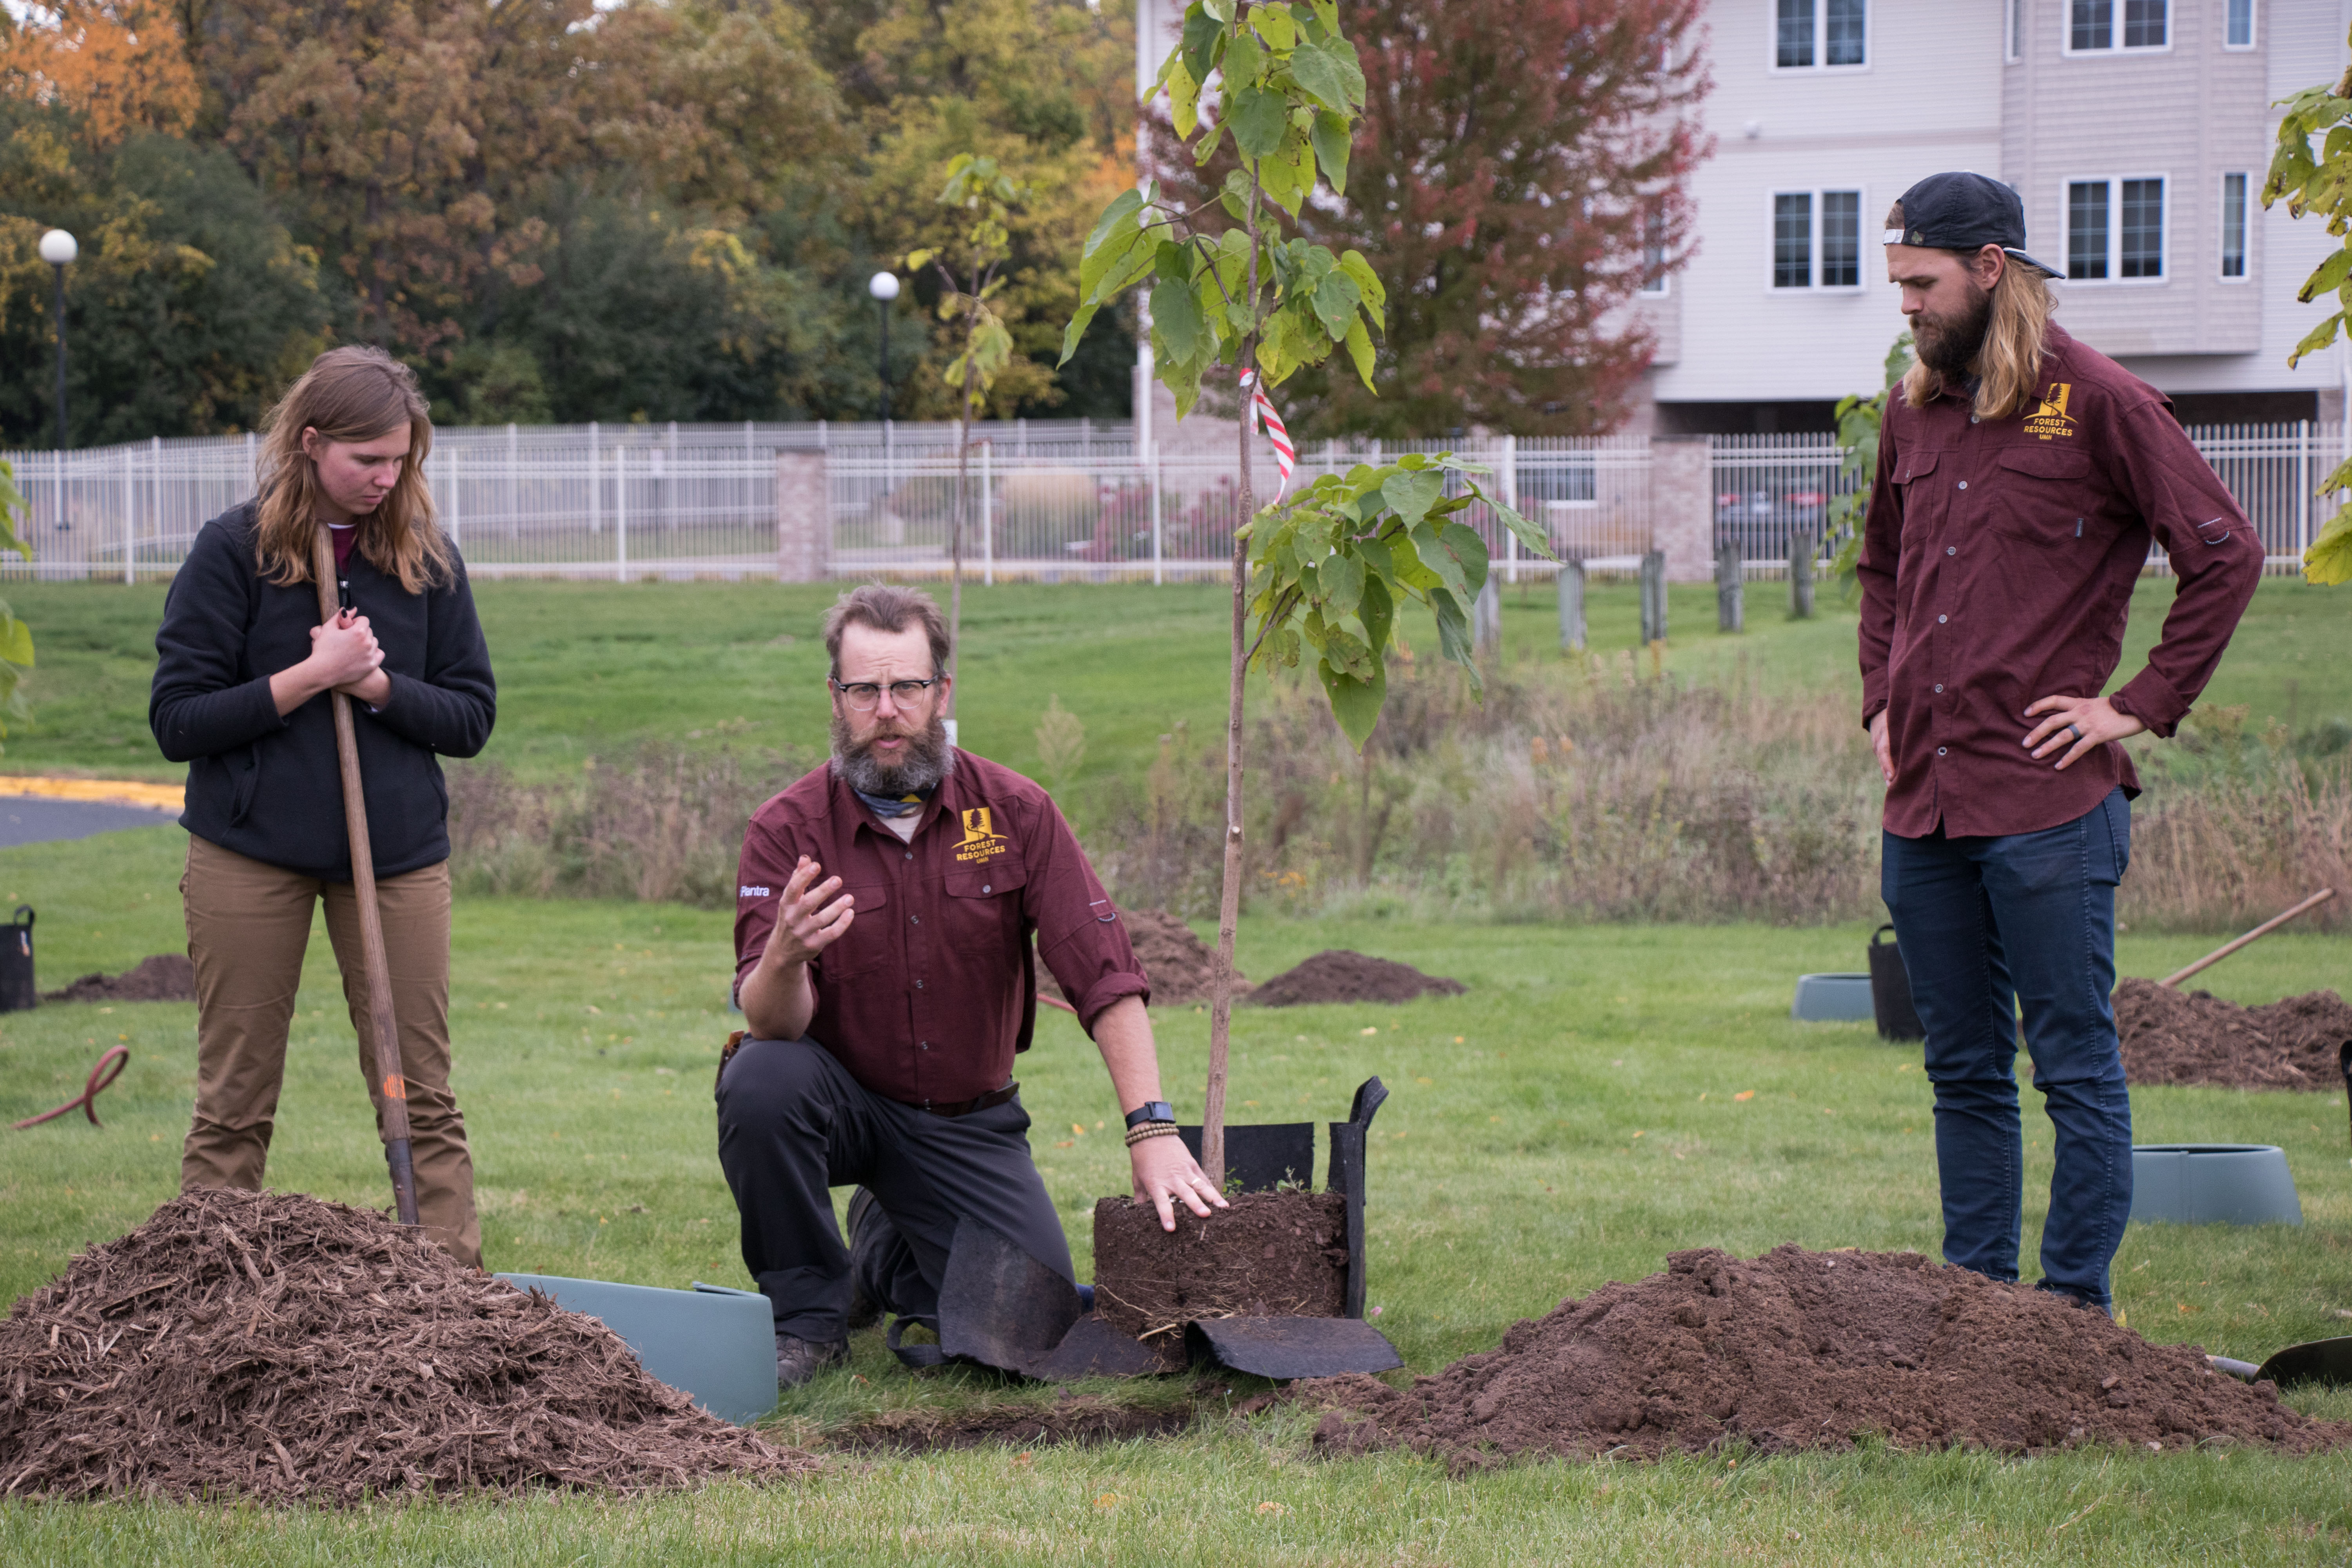 Friendship Forest Plants Connections on Campus